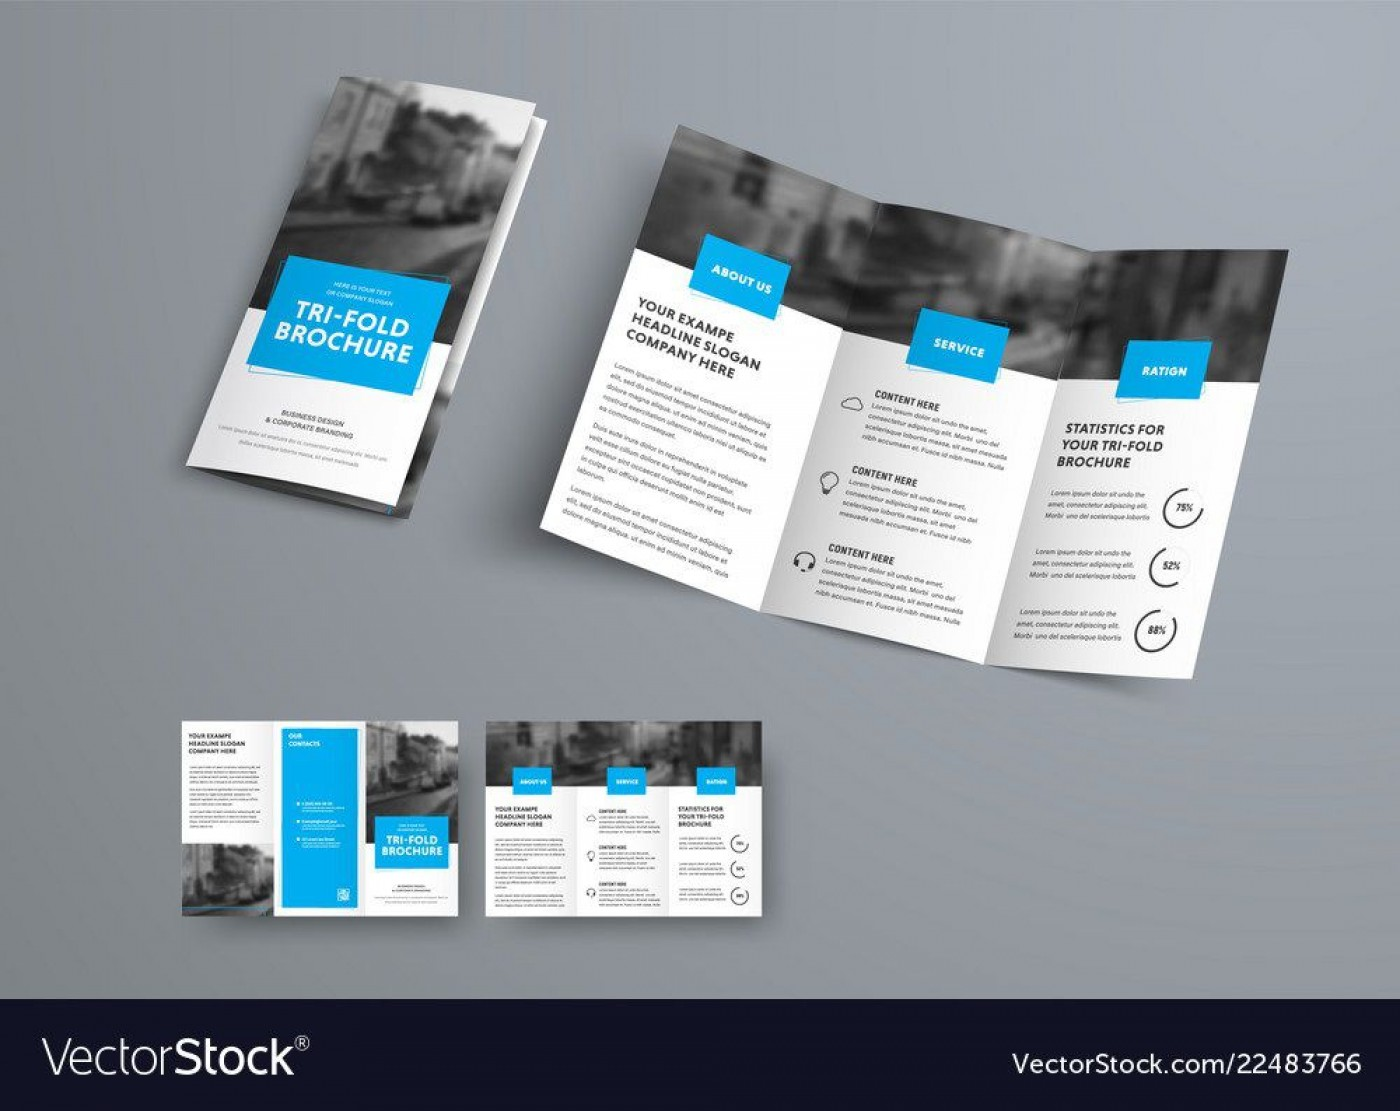 009 Best 3 Fold Brochure Template Sample  For Free1400